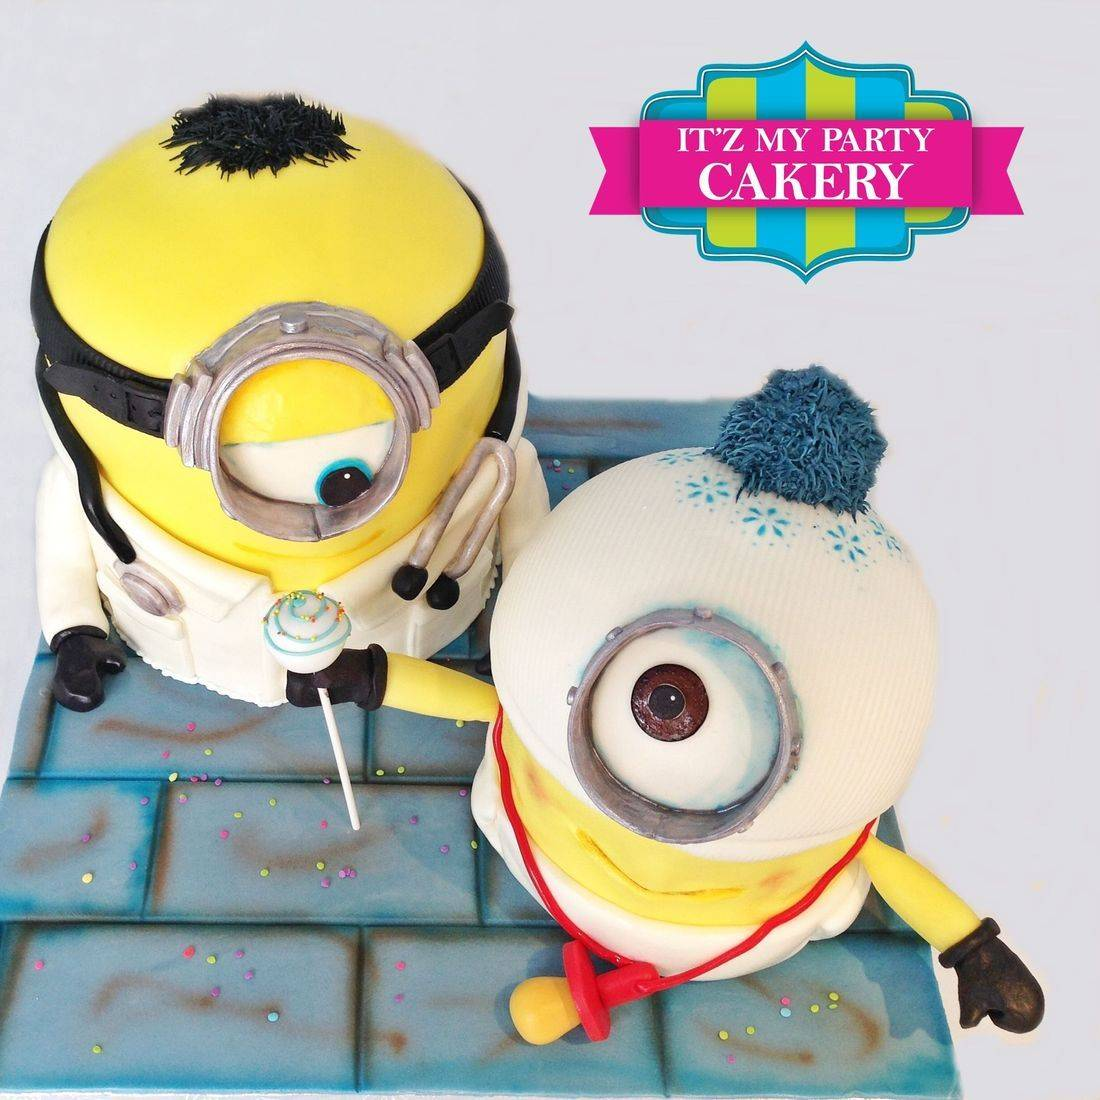 Dr. & Baby Minion Carved Dimensional Cake Milwaukee